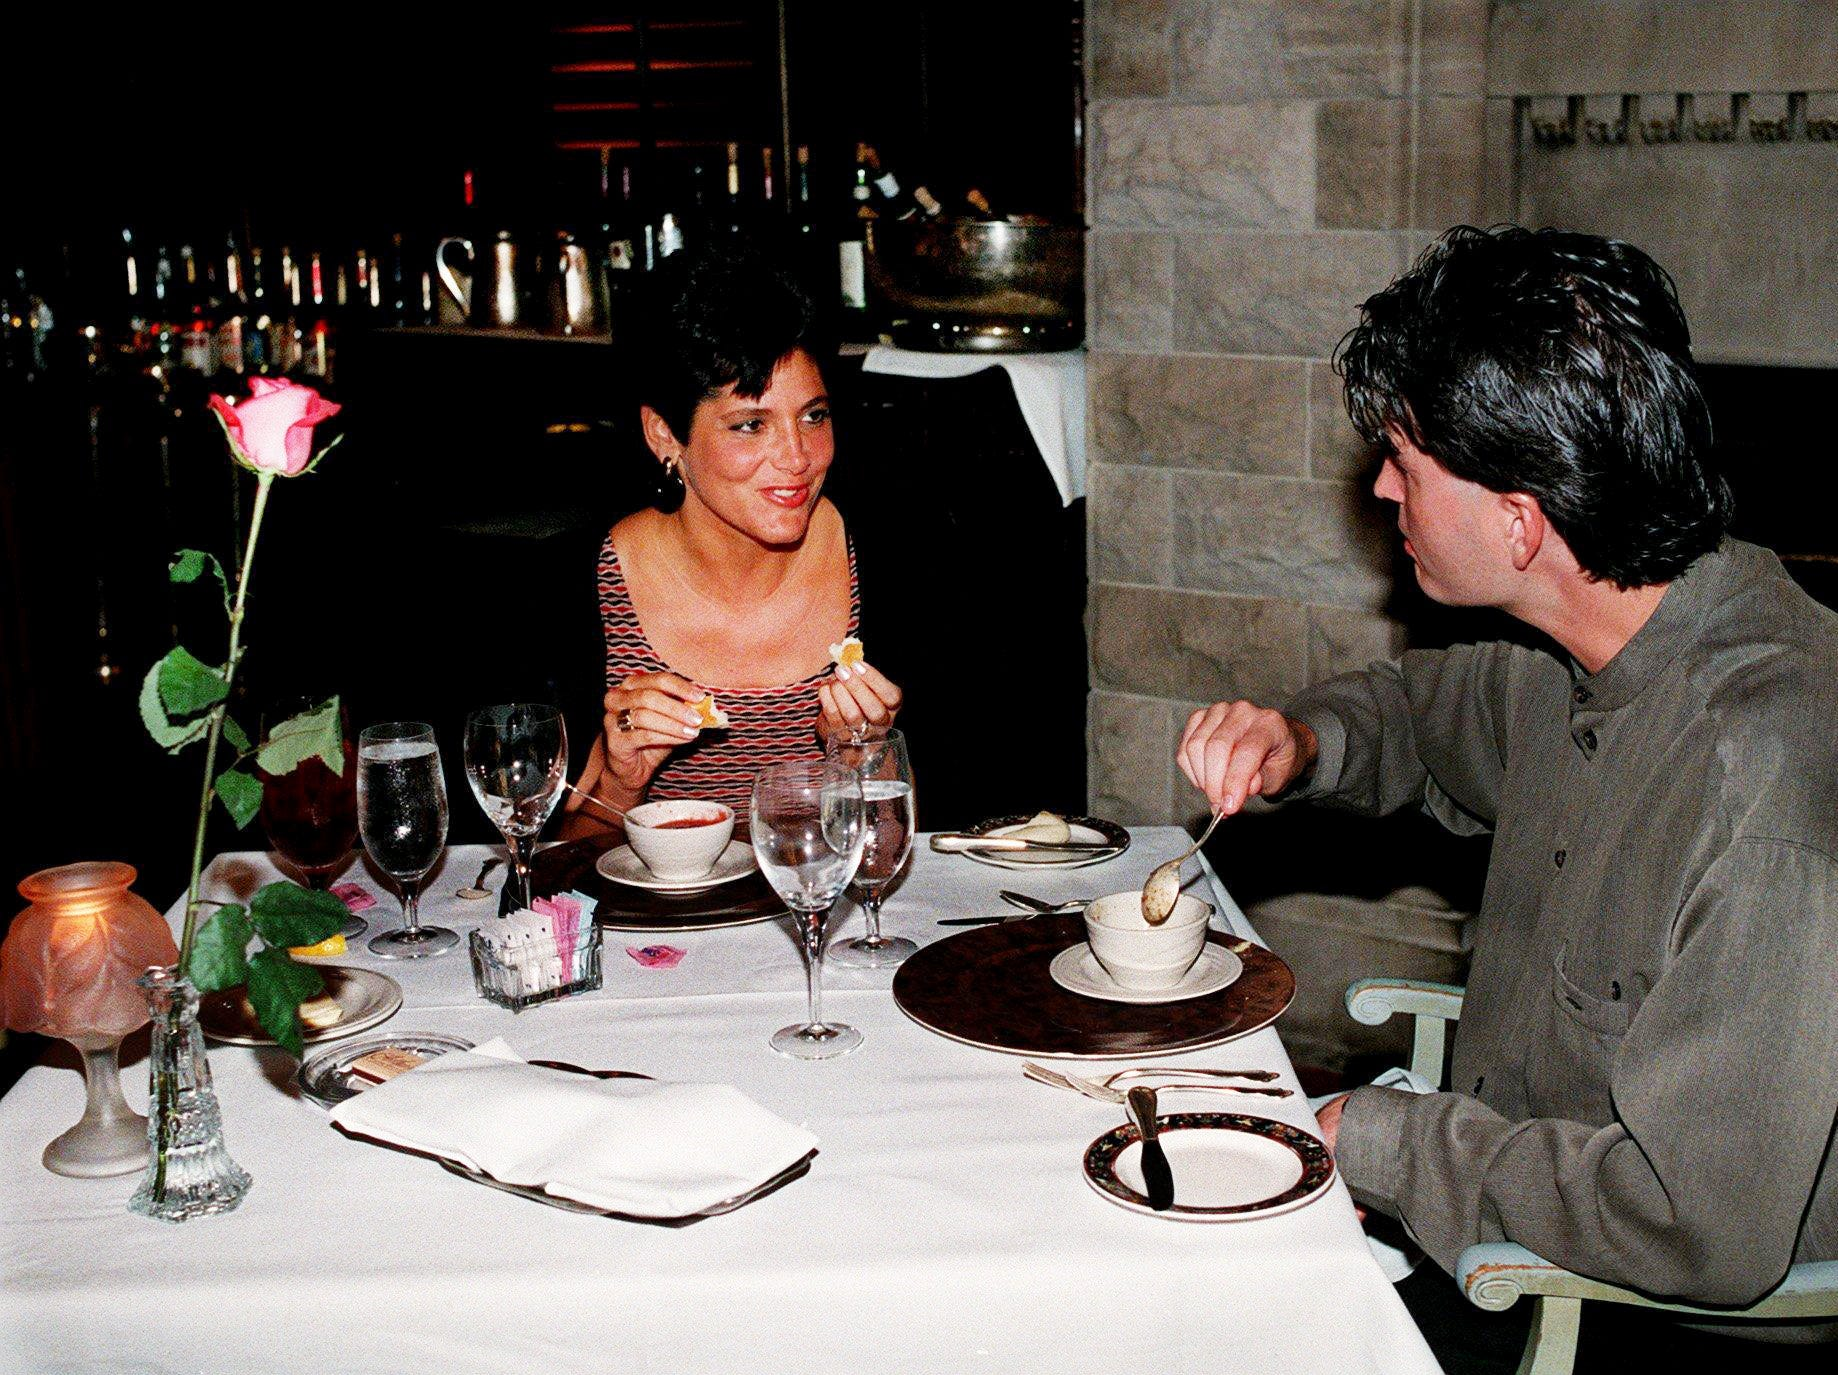 Ronnie and Mindy Thomas of Nashville enjoy their dinner at Arthur's at Union Station Hotel June 27, 1998.